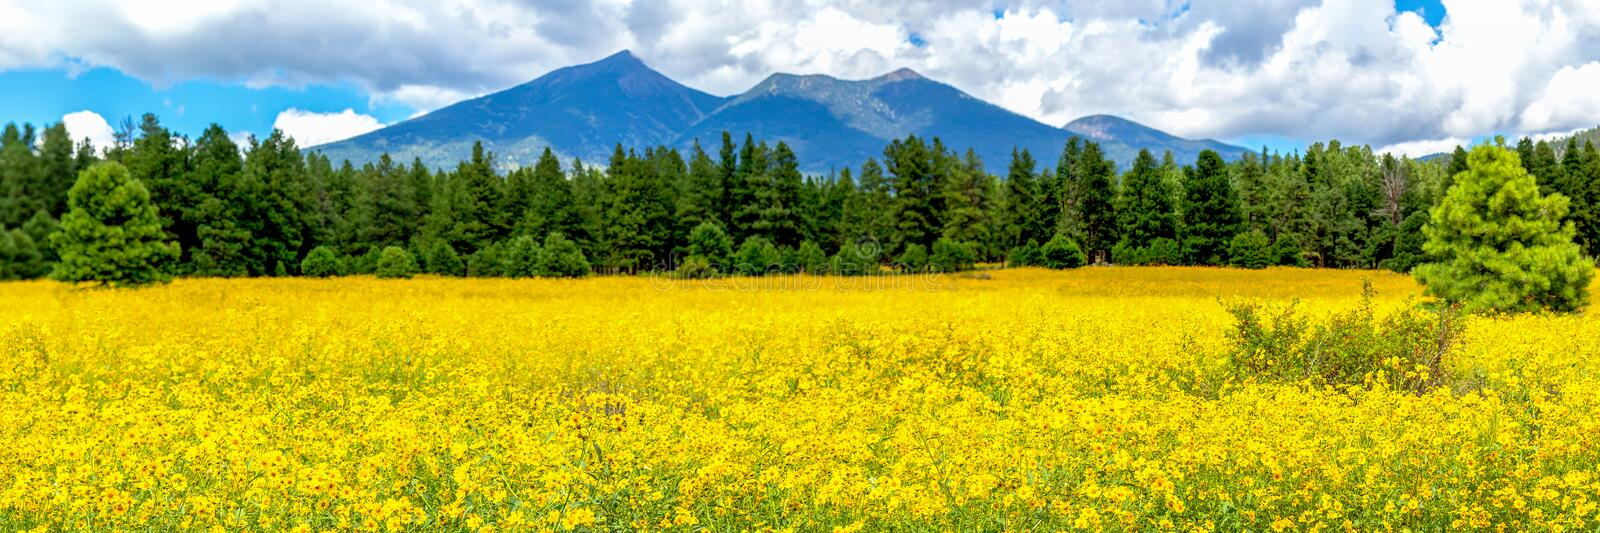 Flagstaff Flower Field Panorama royalty free stock photography